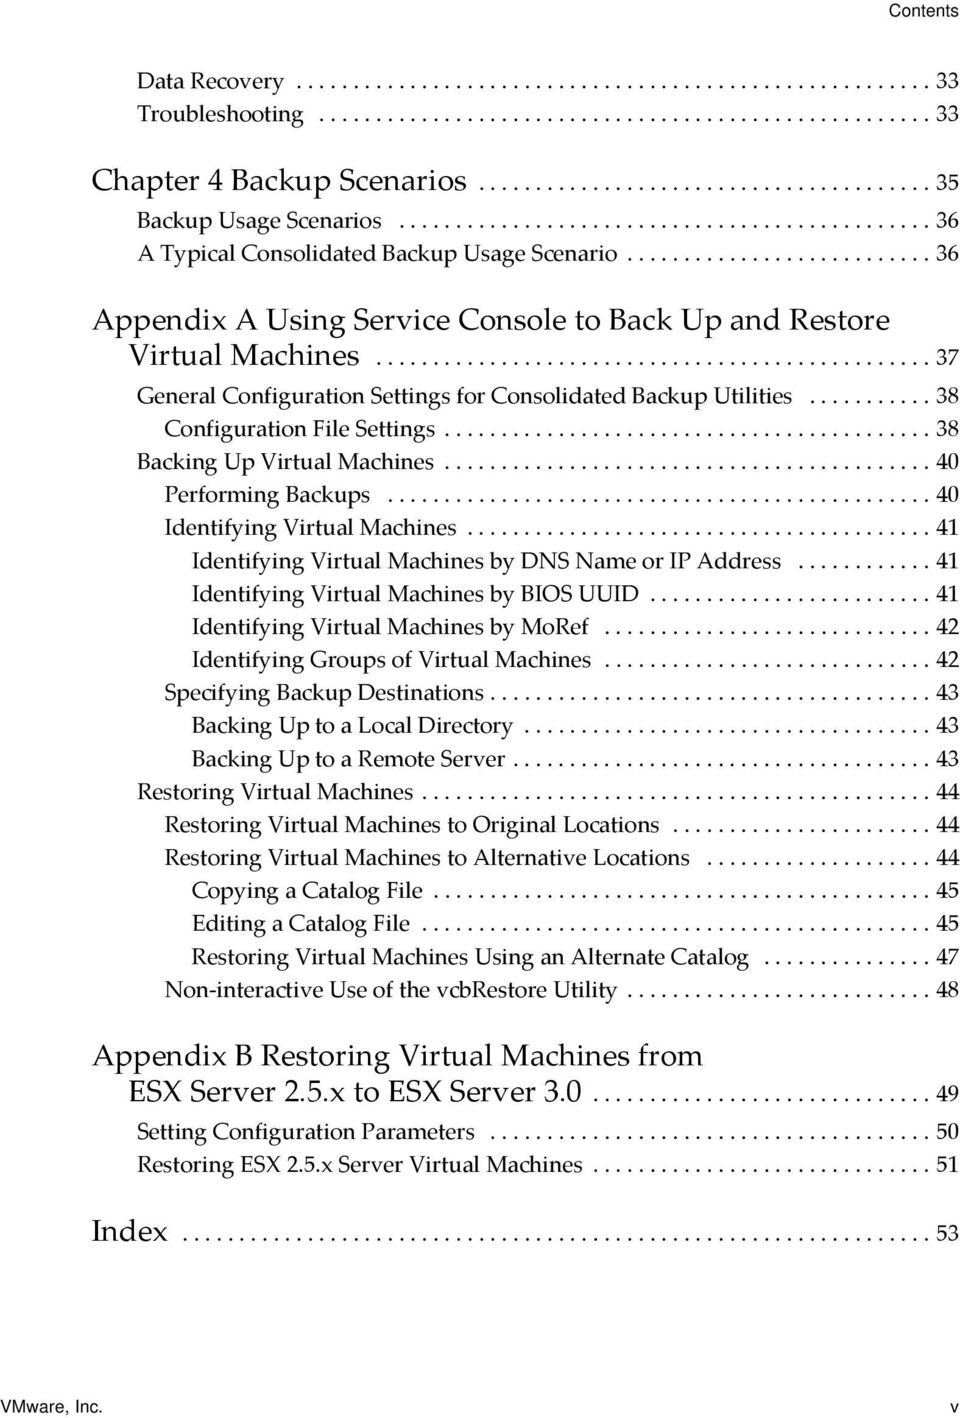 .......................... 36 Appendix A Using Service Console to Back Up and Restore Virtual Machines................................................. 37 General Configuration Settings for Consolidated Backup Utilities.